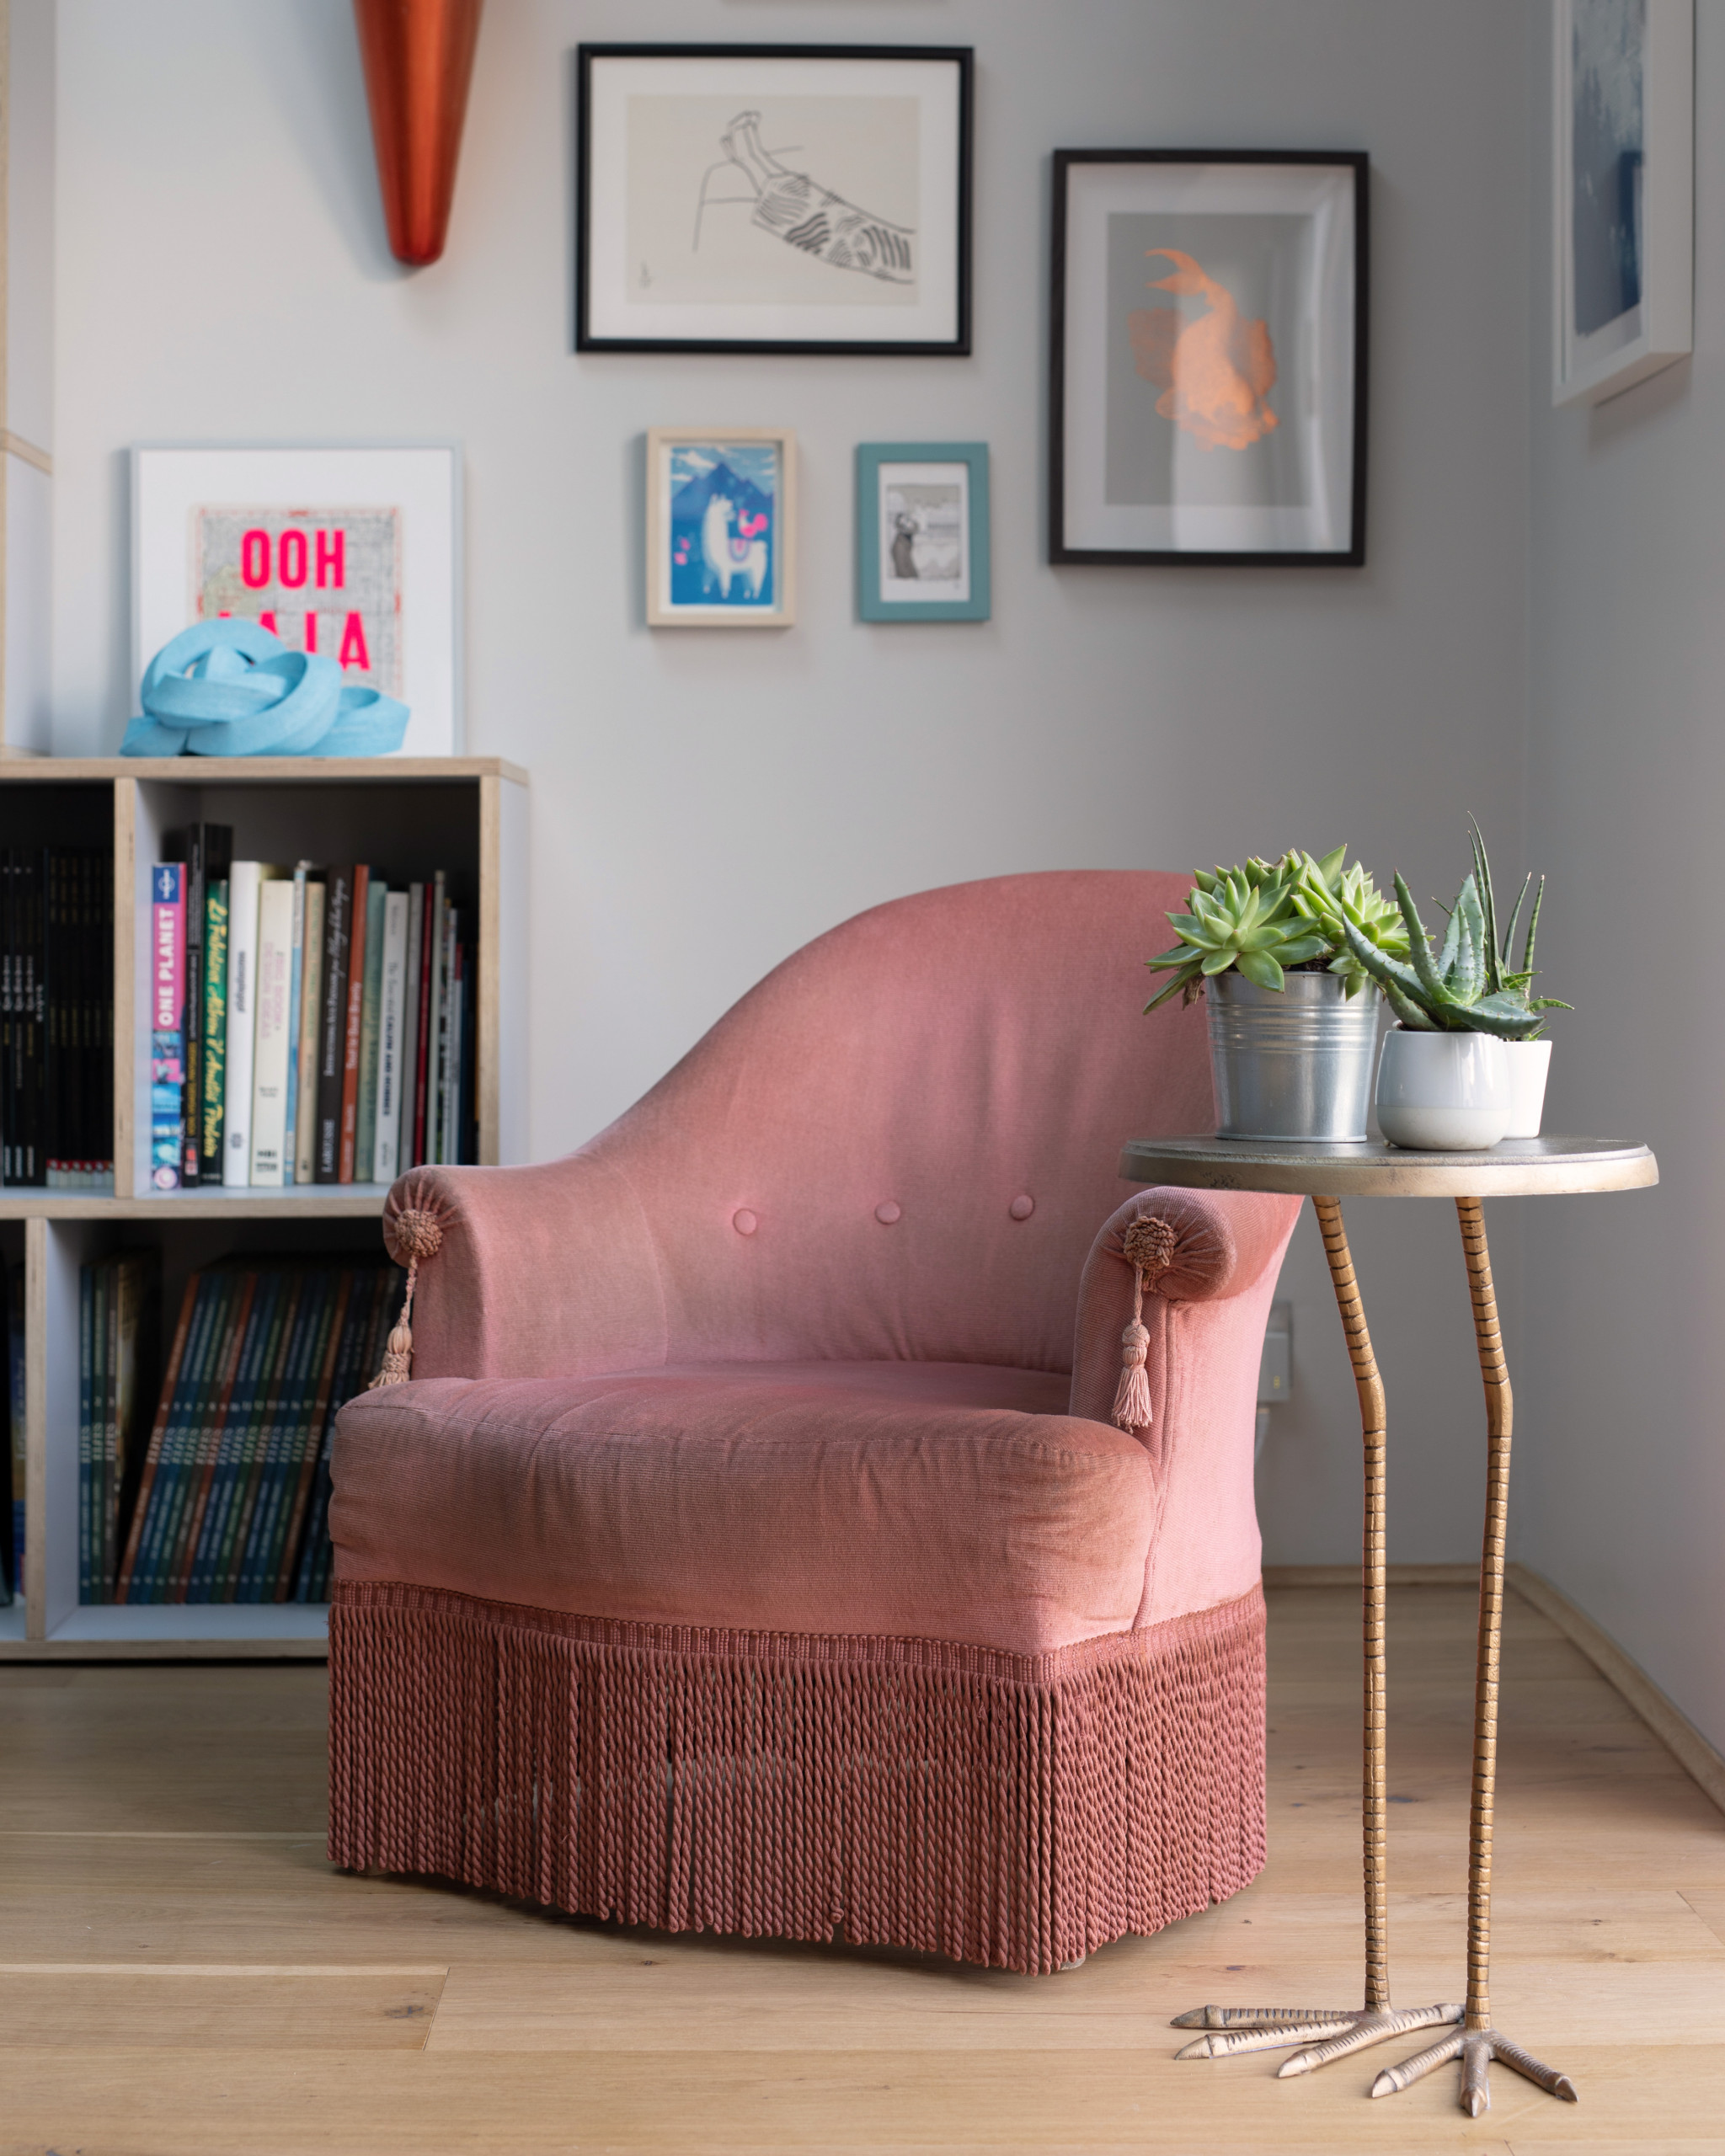 Working from home - how to blend your office in an open plan